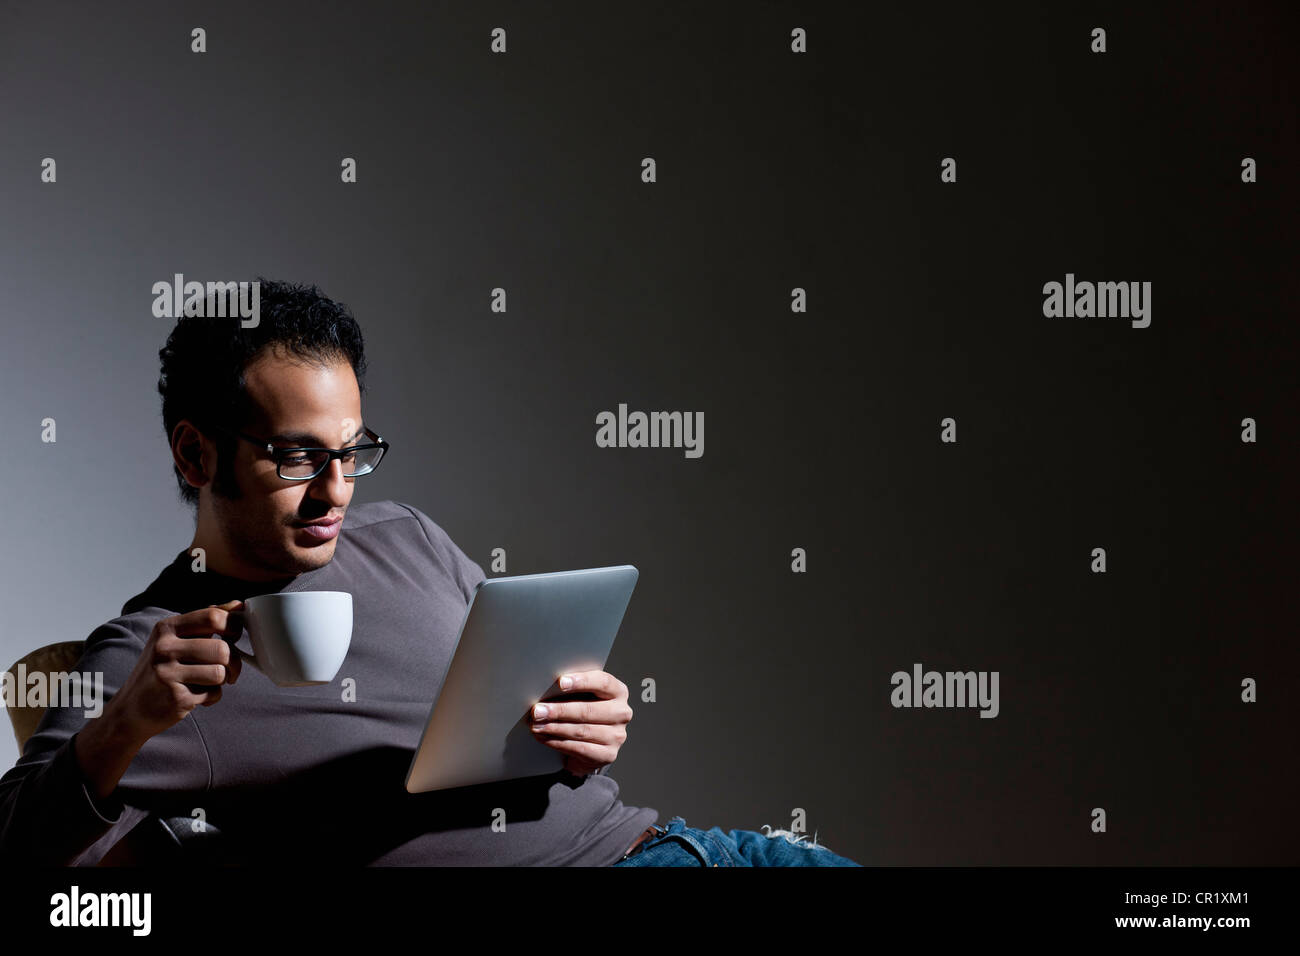 Man with coffee using tablet computer - Stock Image